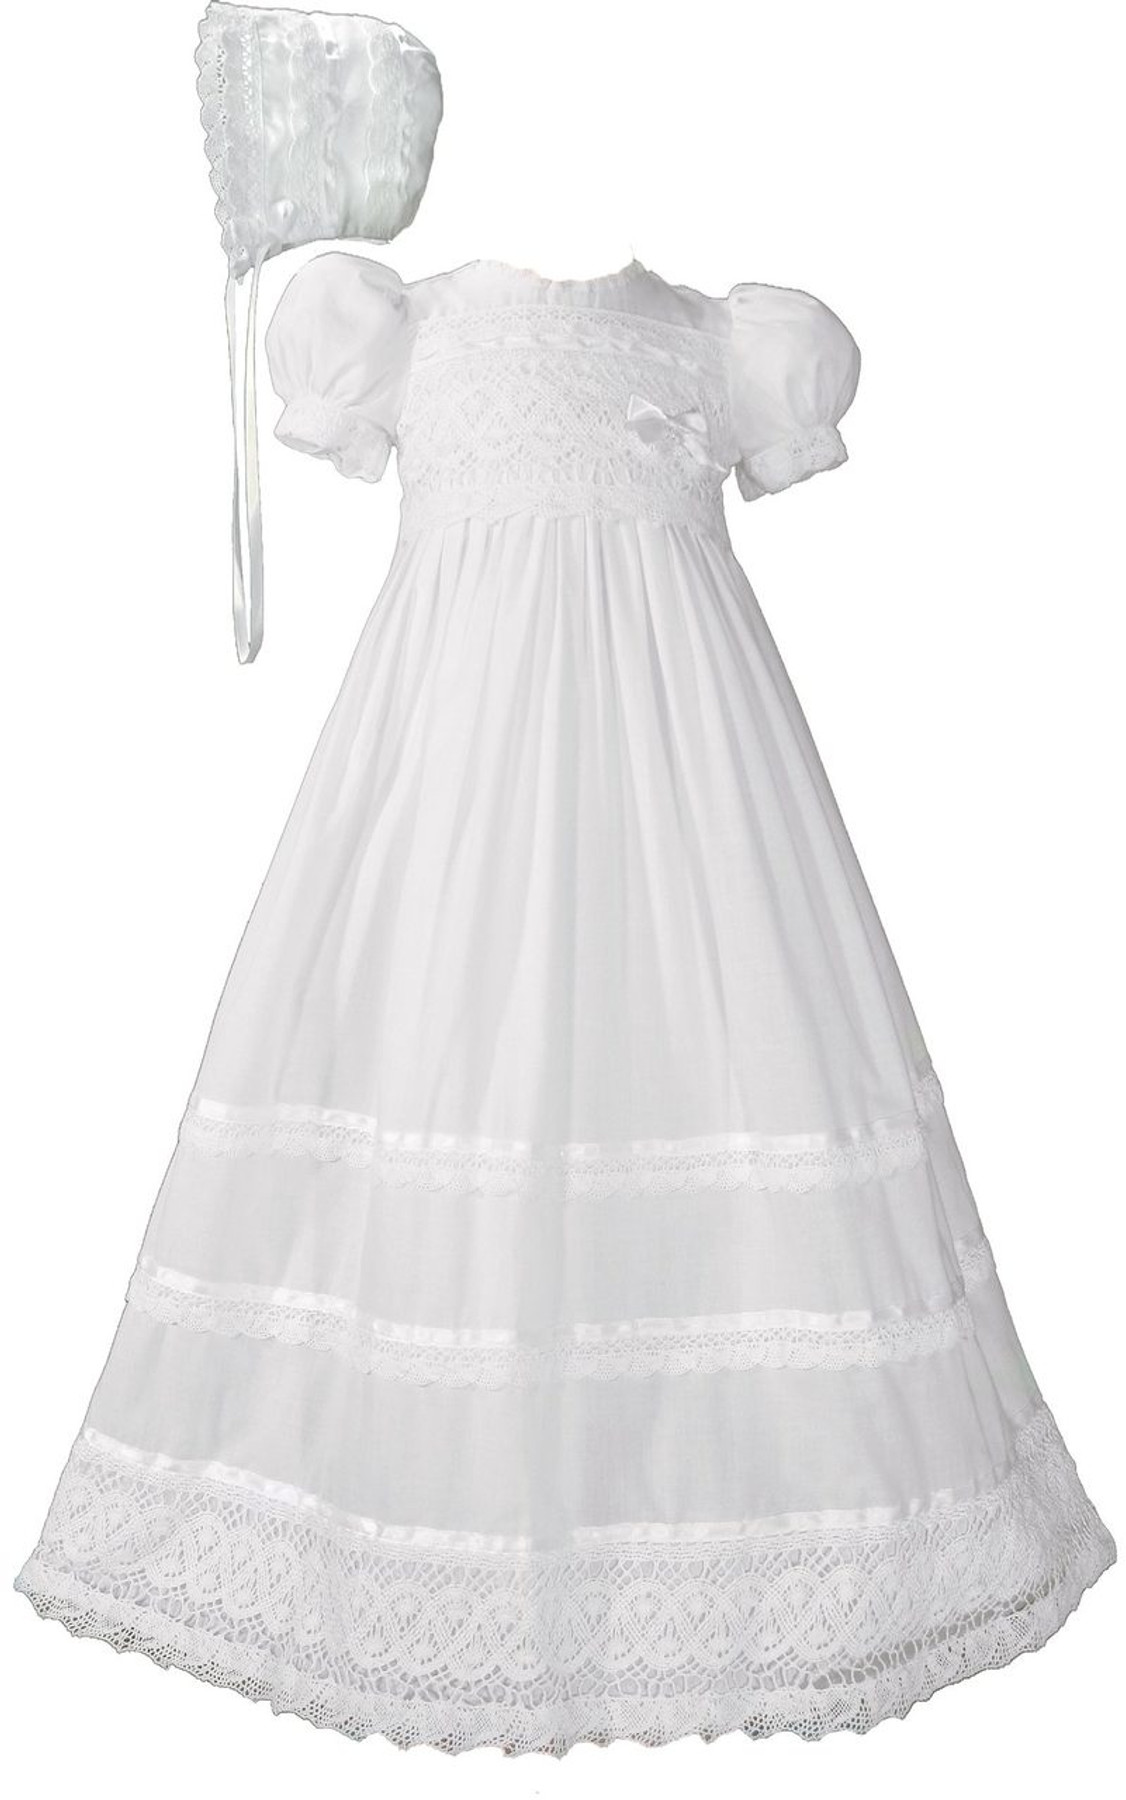 100/% Cotton Dress Christening Gown Baptism Gown with Lace Border